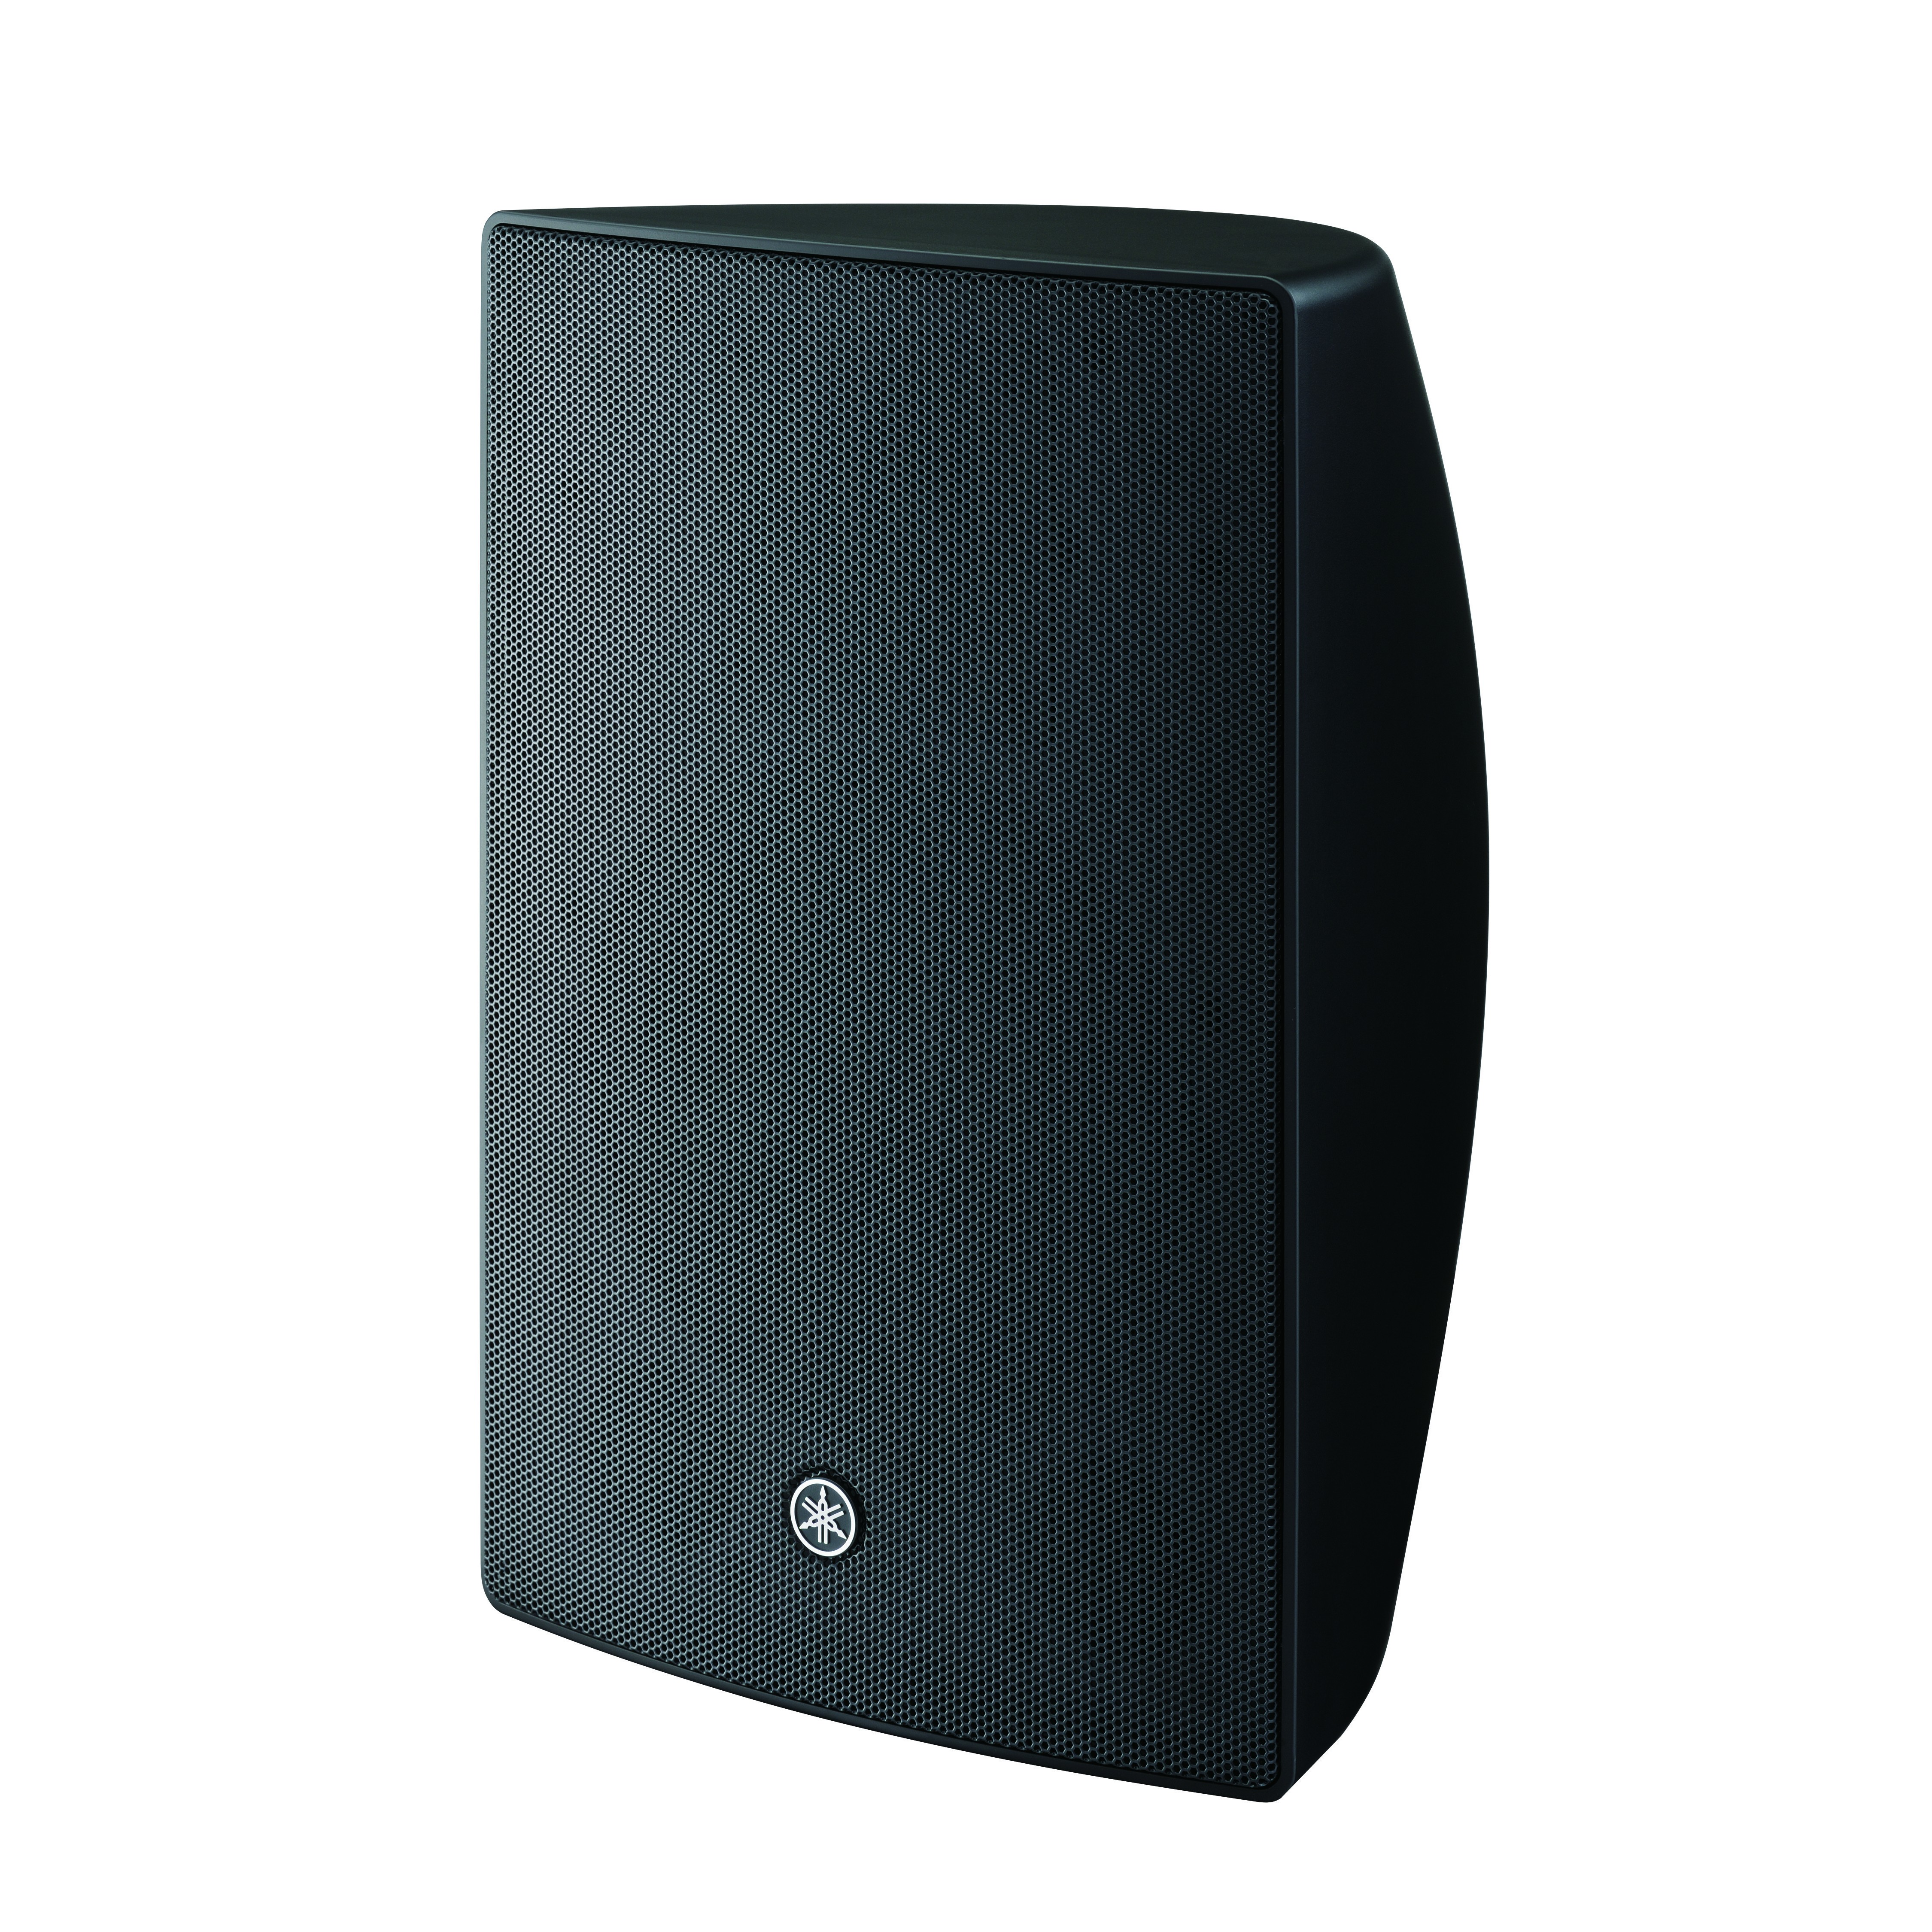 Yamaha conference room sound system with 10 vx series for Yamaha speakers system